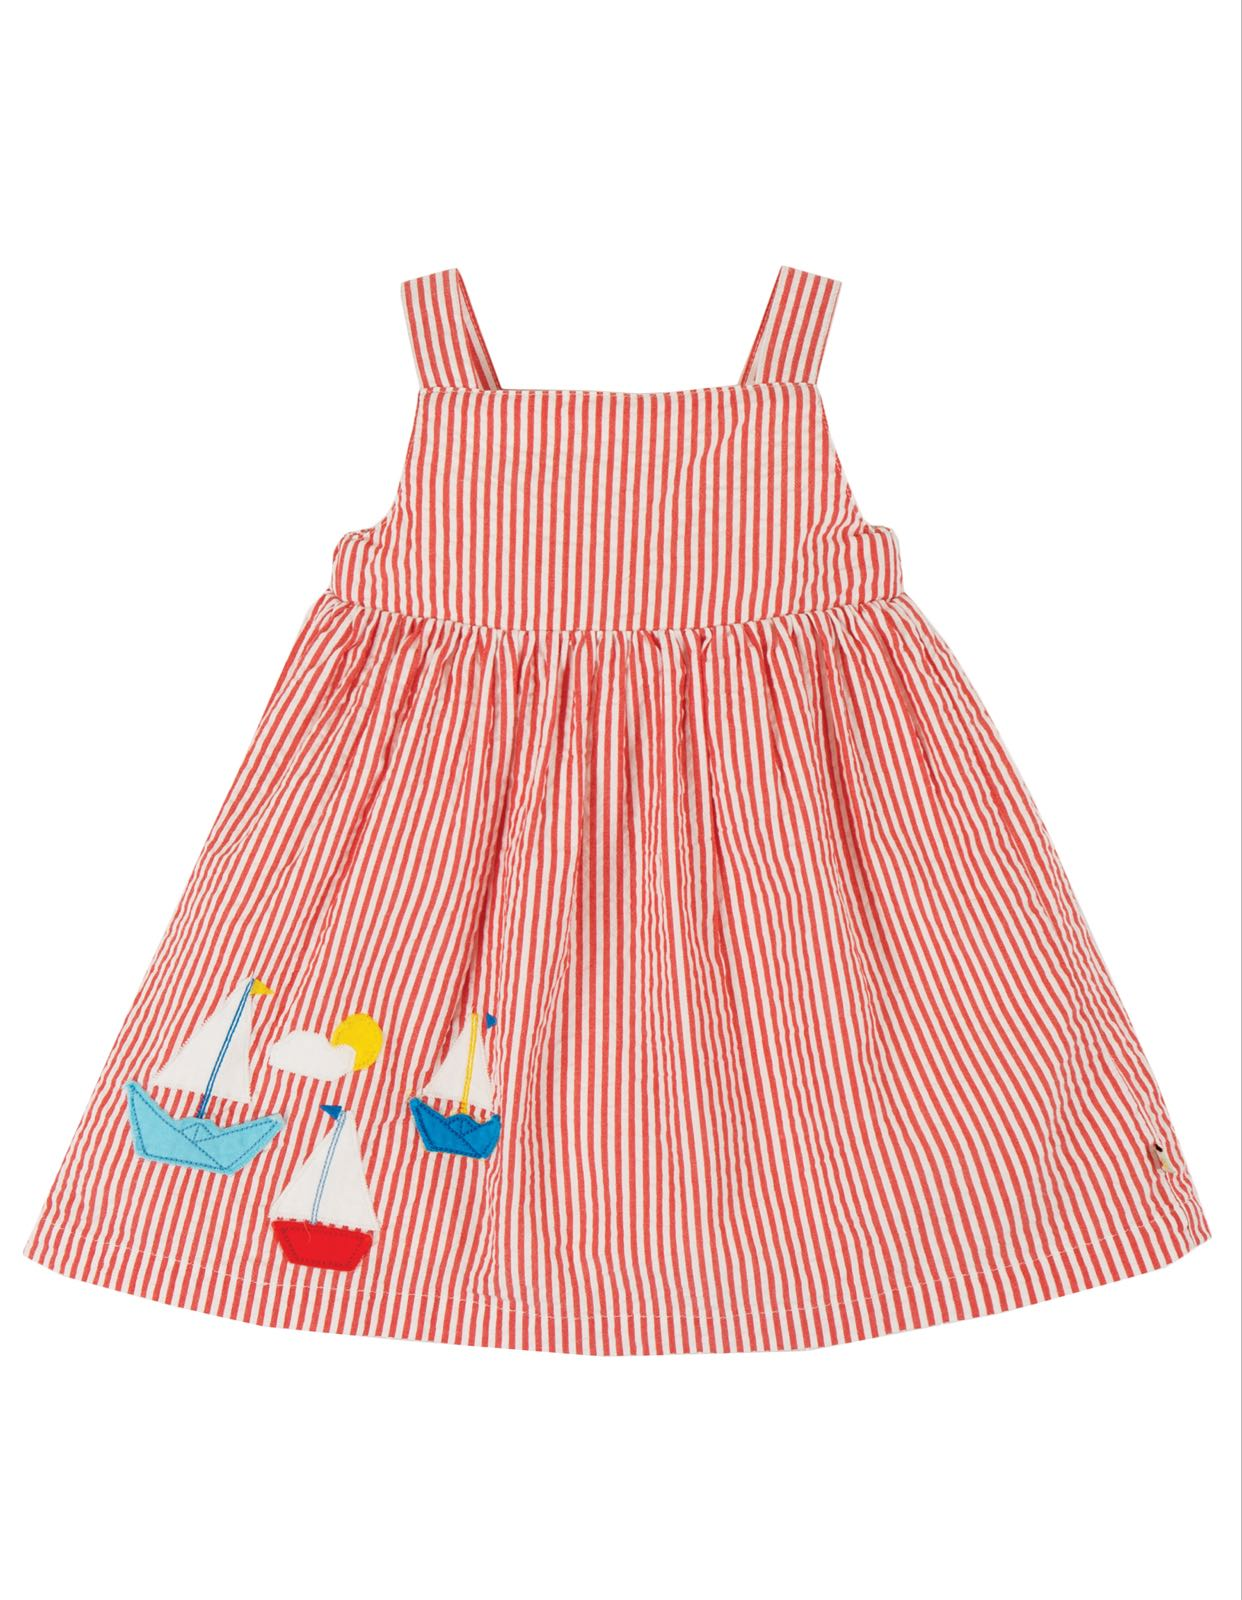 Frugi Alma Summer Dress, Koi Red Seersucker Boat